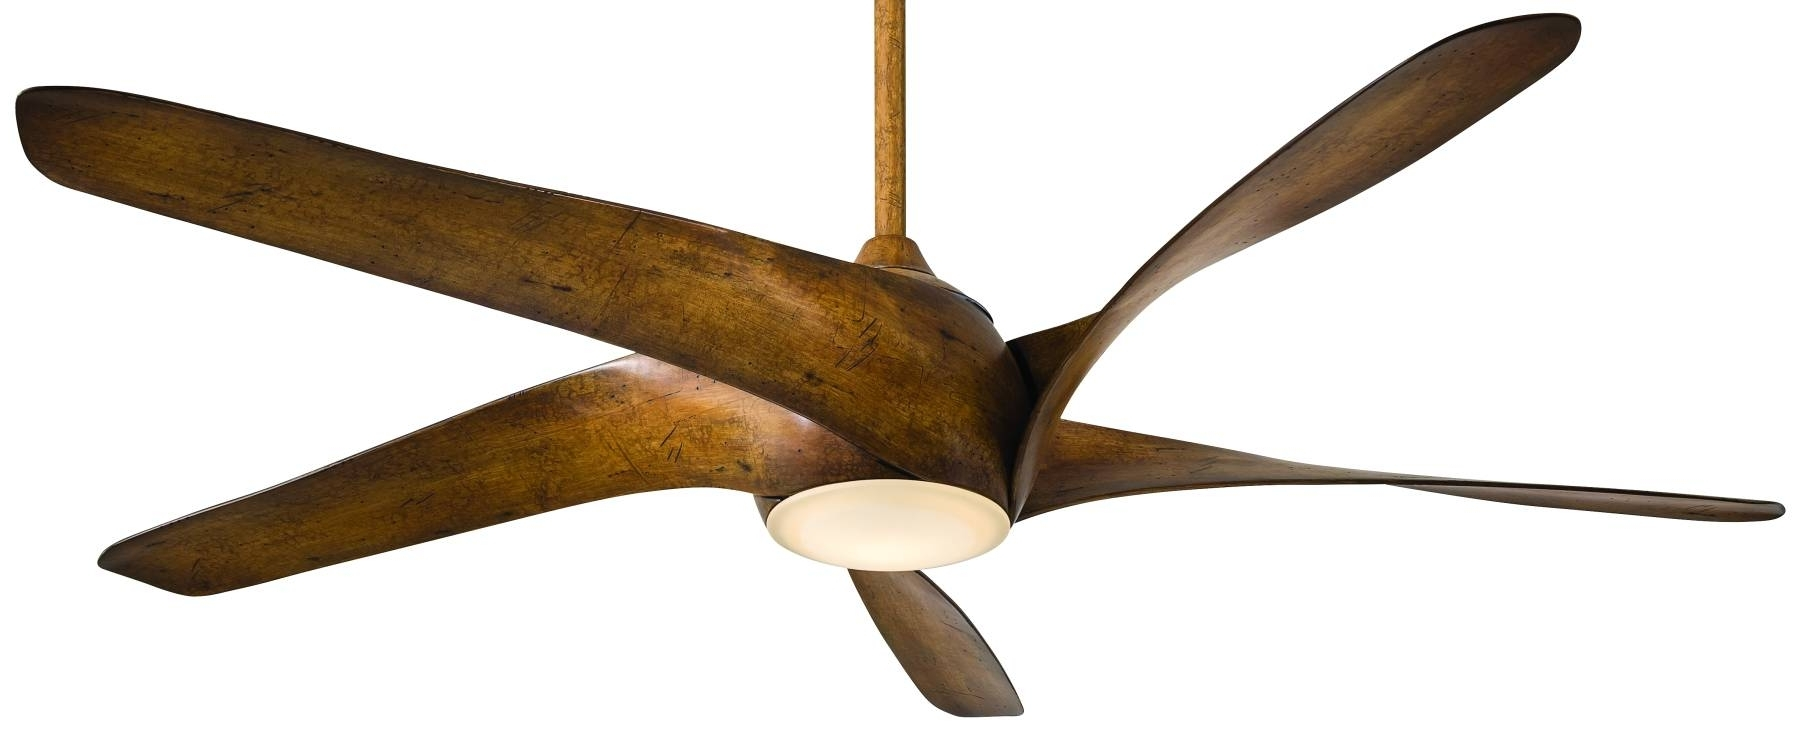 Industrial Outdoor Ceiling Fans With Light Pertaining To Most Popular Ceiling Fan: Inspiring Large Ceiling Fans For Home 96 Inch Ceiling (Gallery 20 of 20)